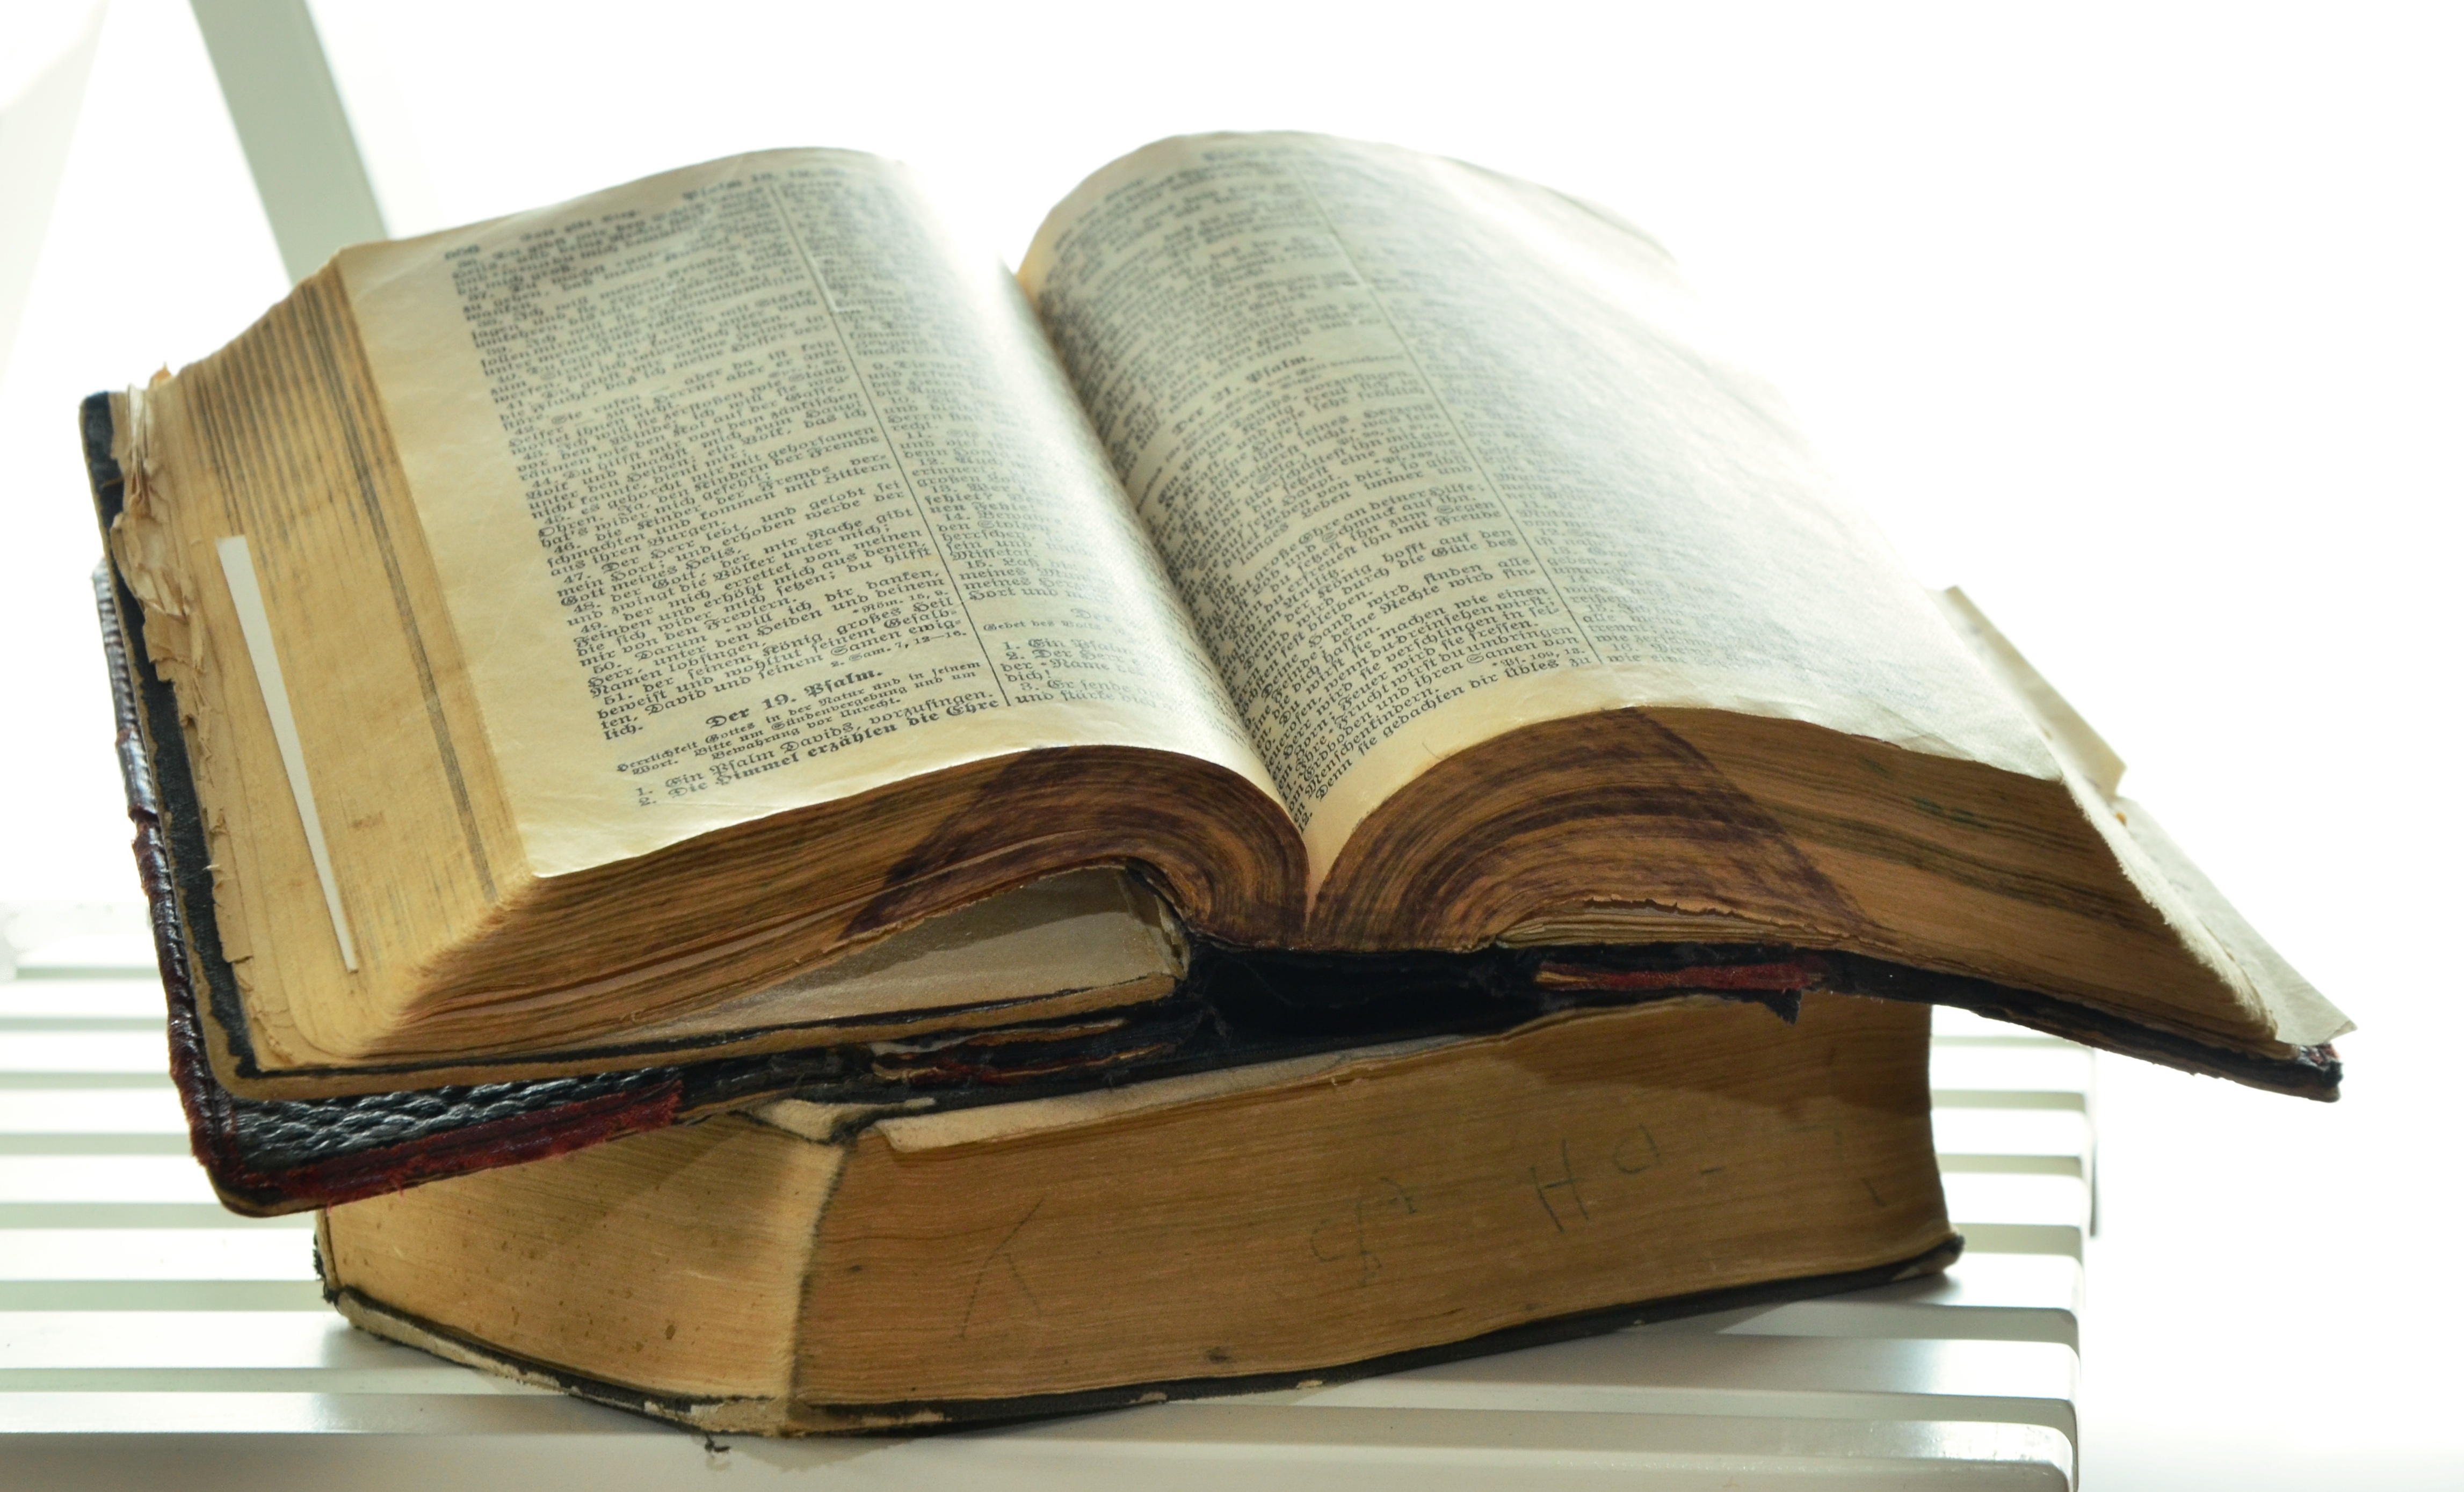 the bible is not a historical document